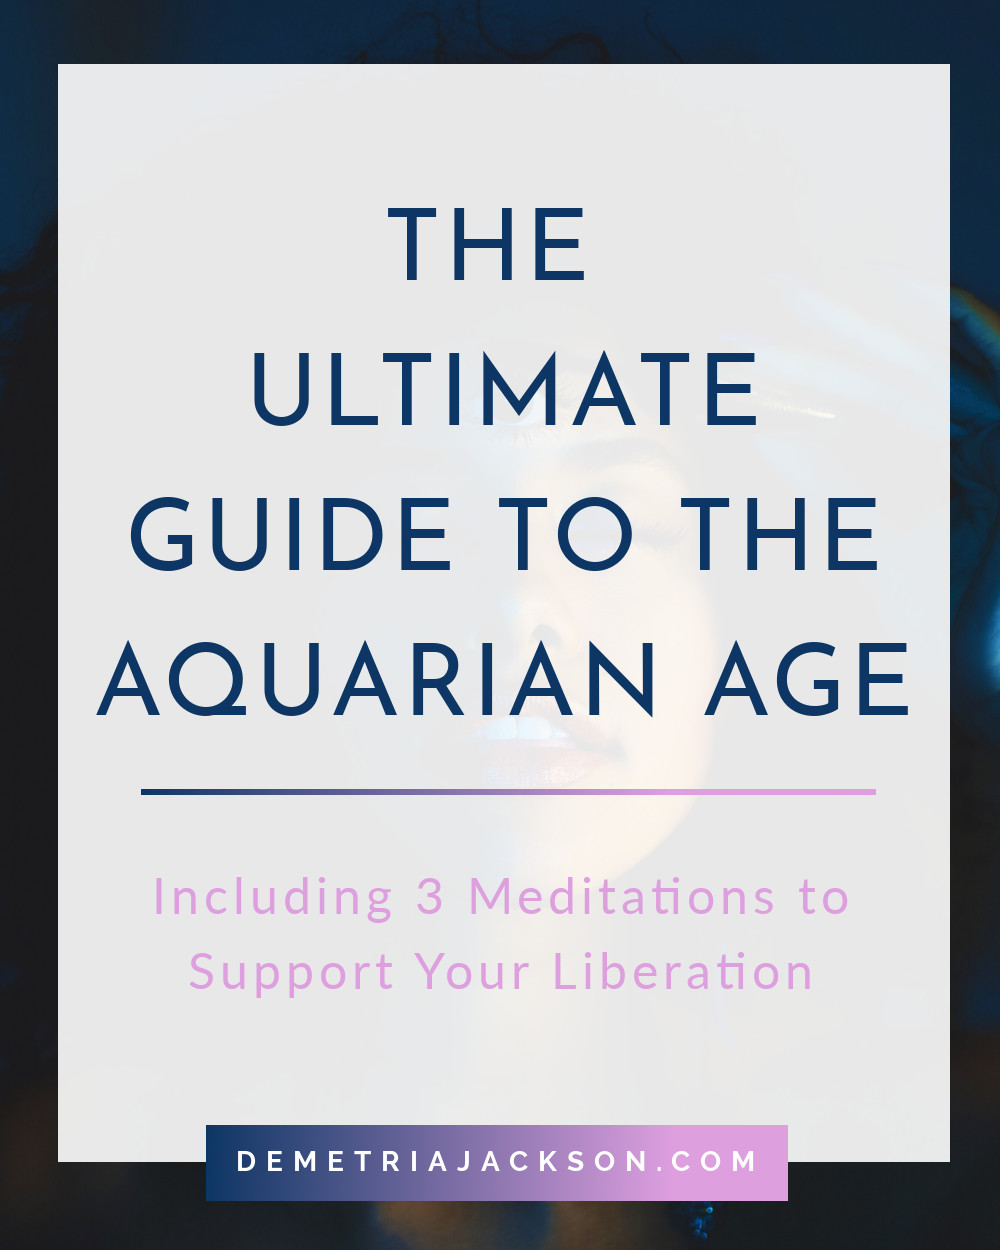 blog-thumbnail-ultimate-guide-aquarian-age.jpeg